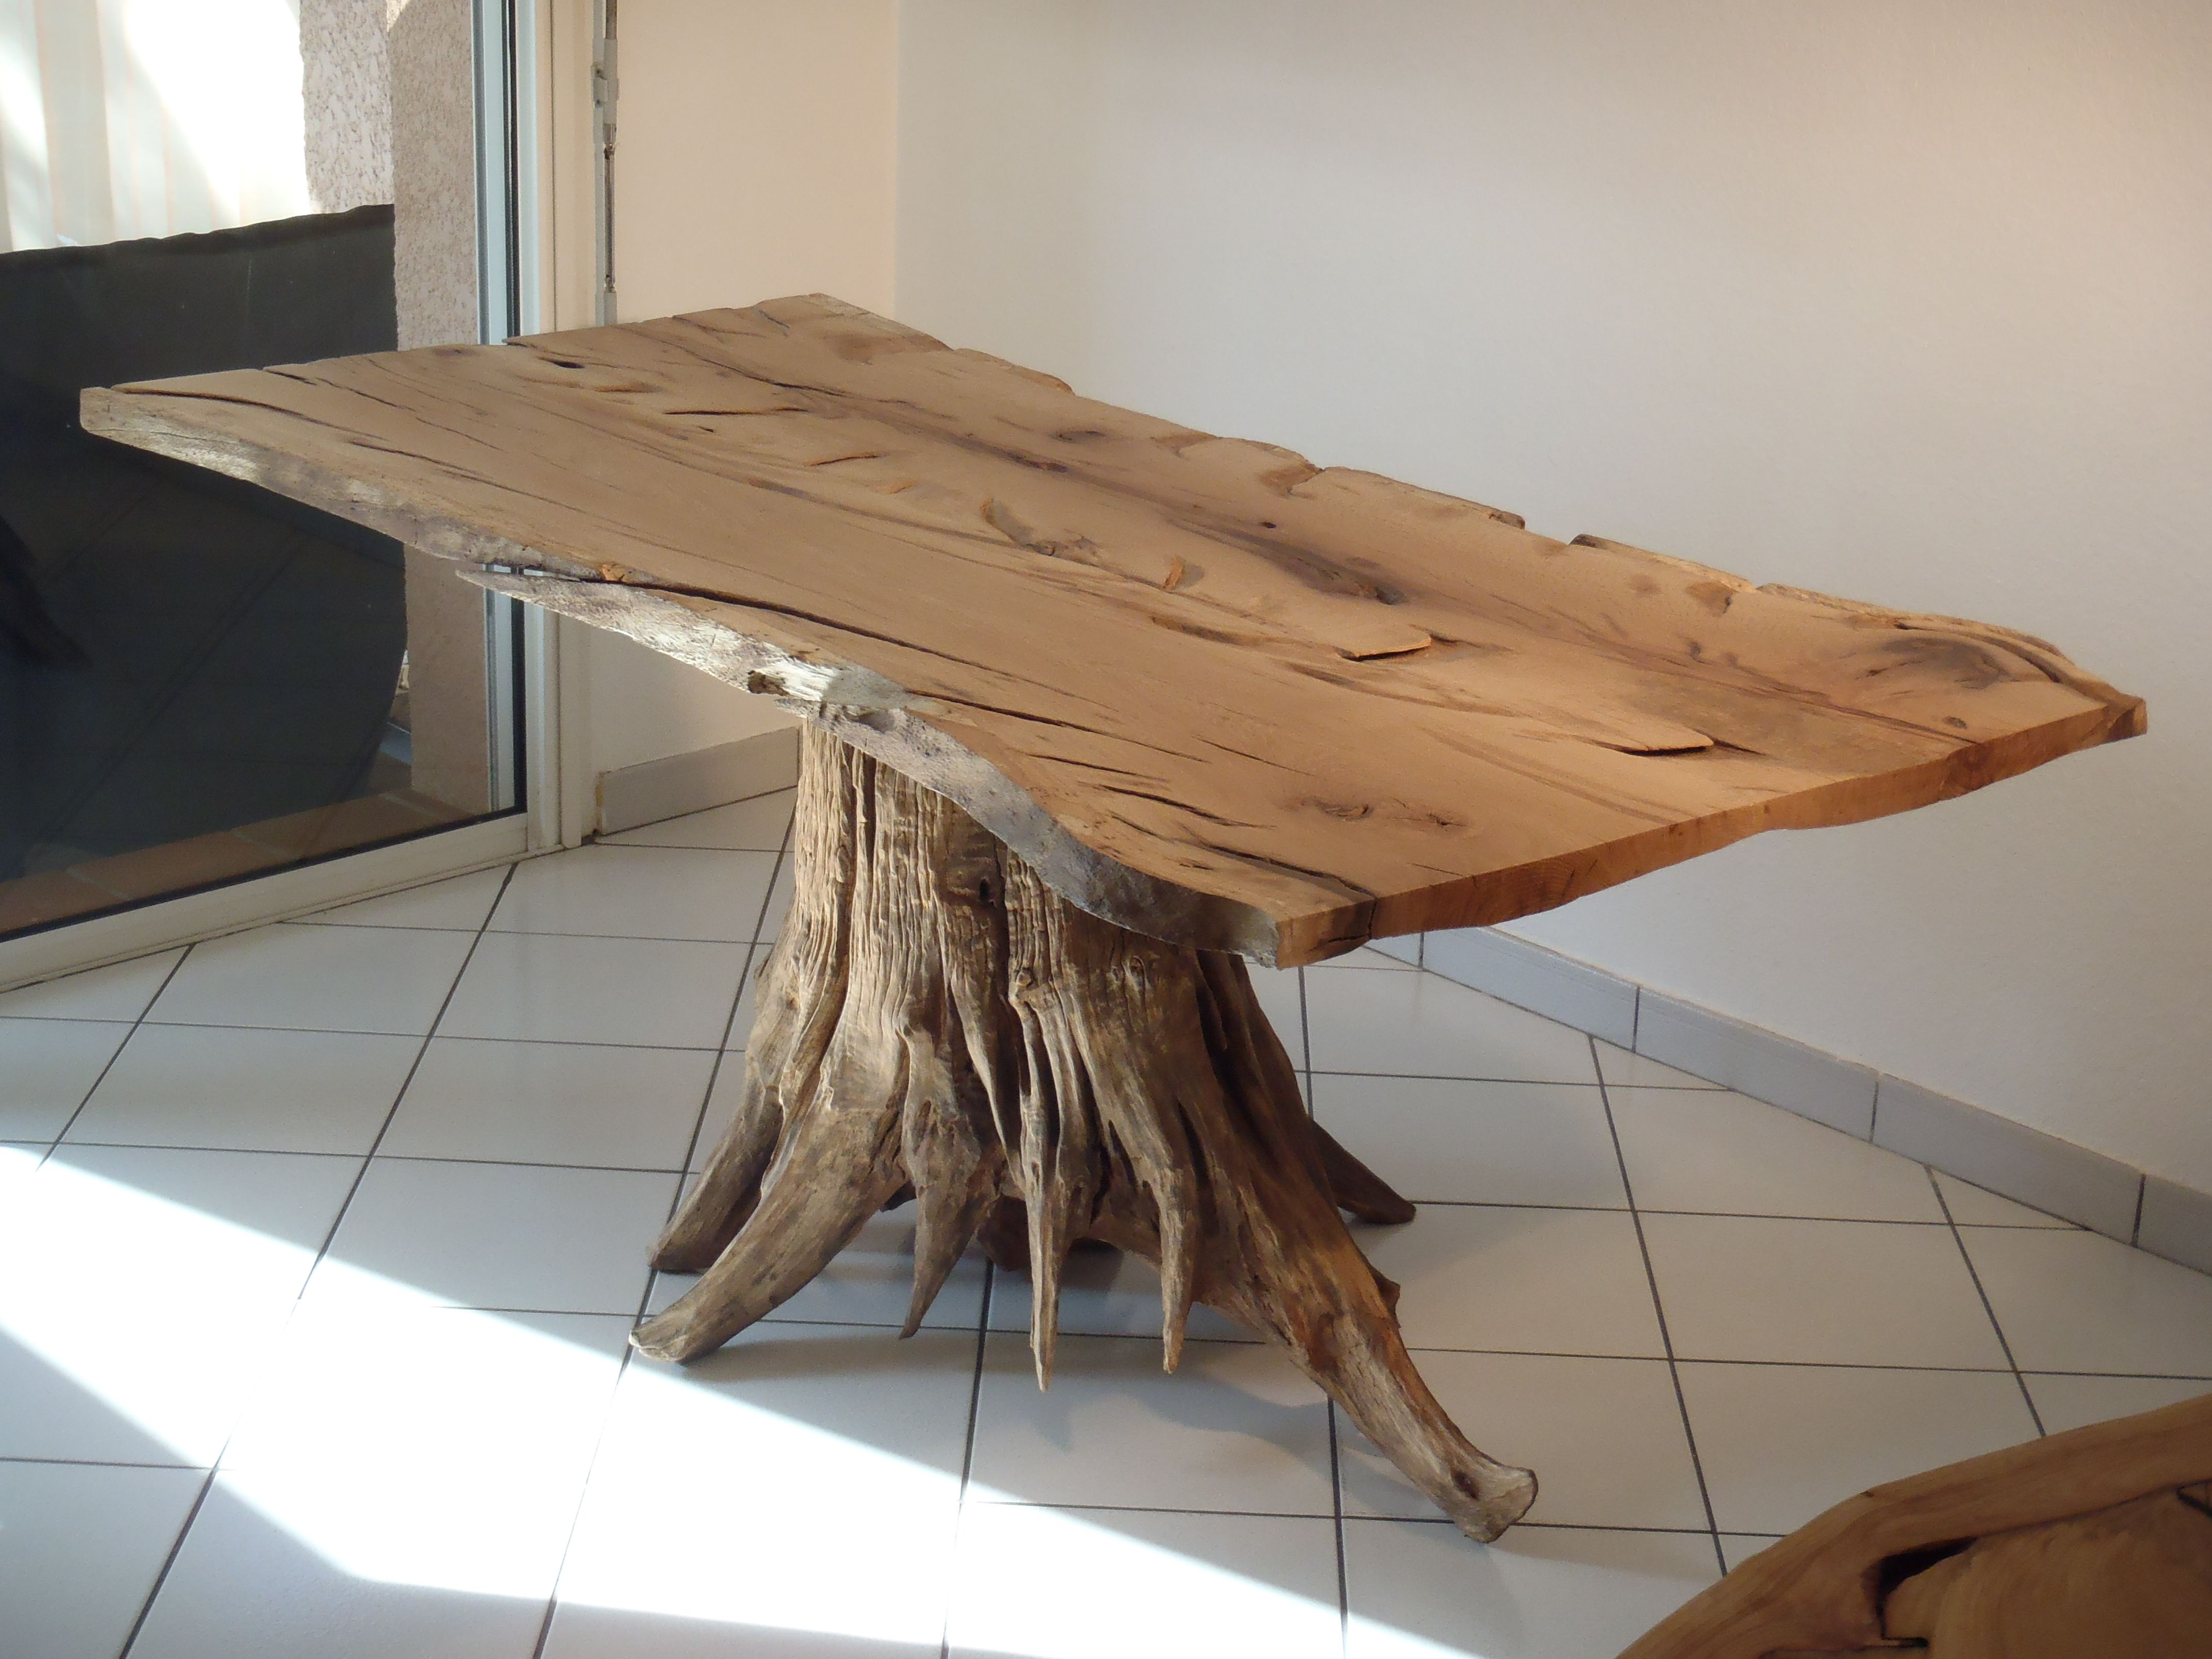 Table manger souche racine d 39 arbre deco table bois table bois massif et table tronc d 39 arbre - Arbre deco interieur ...